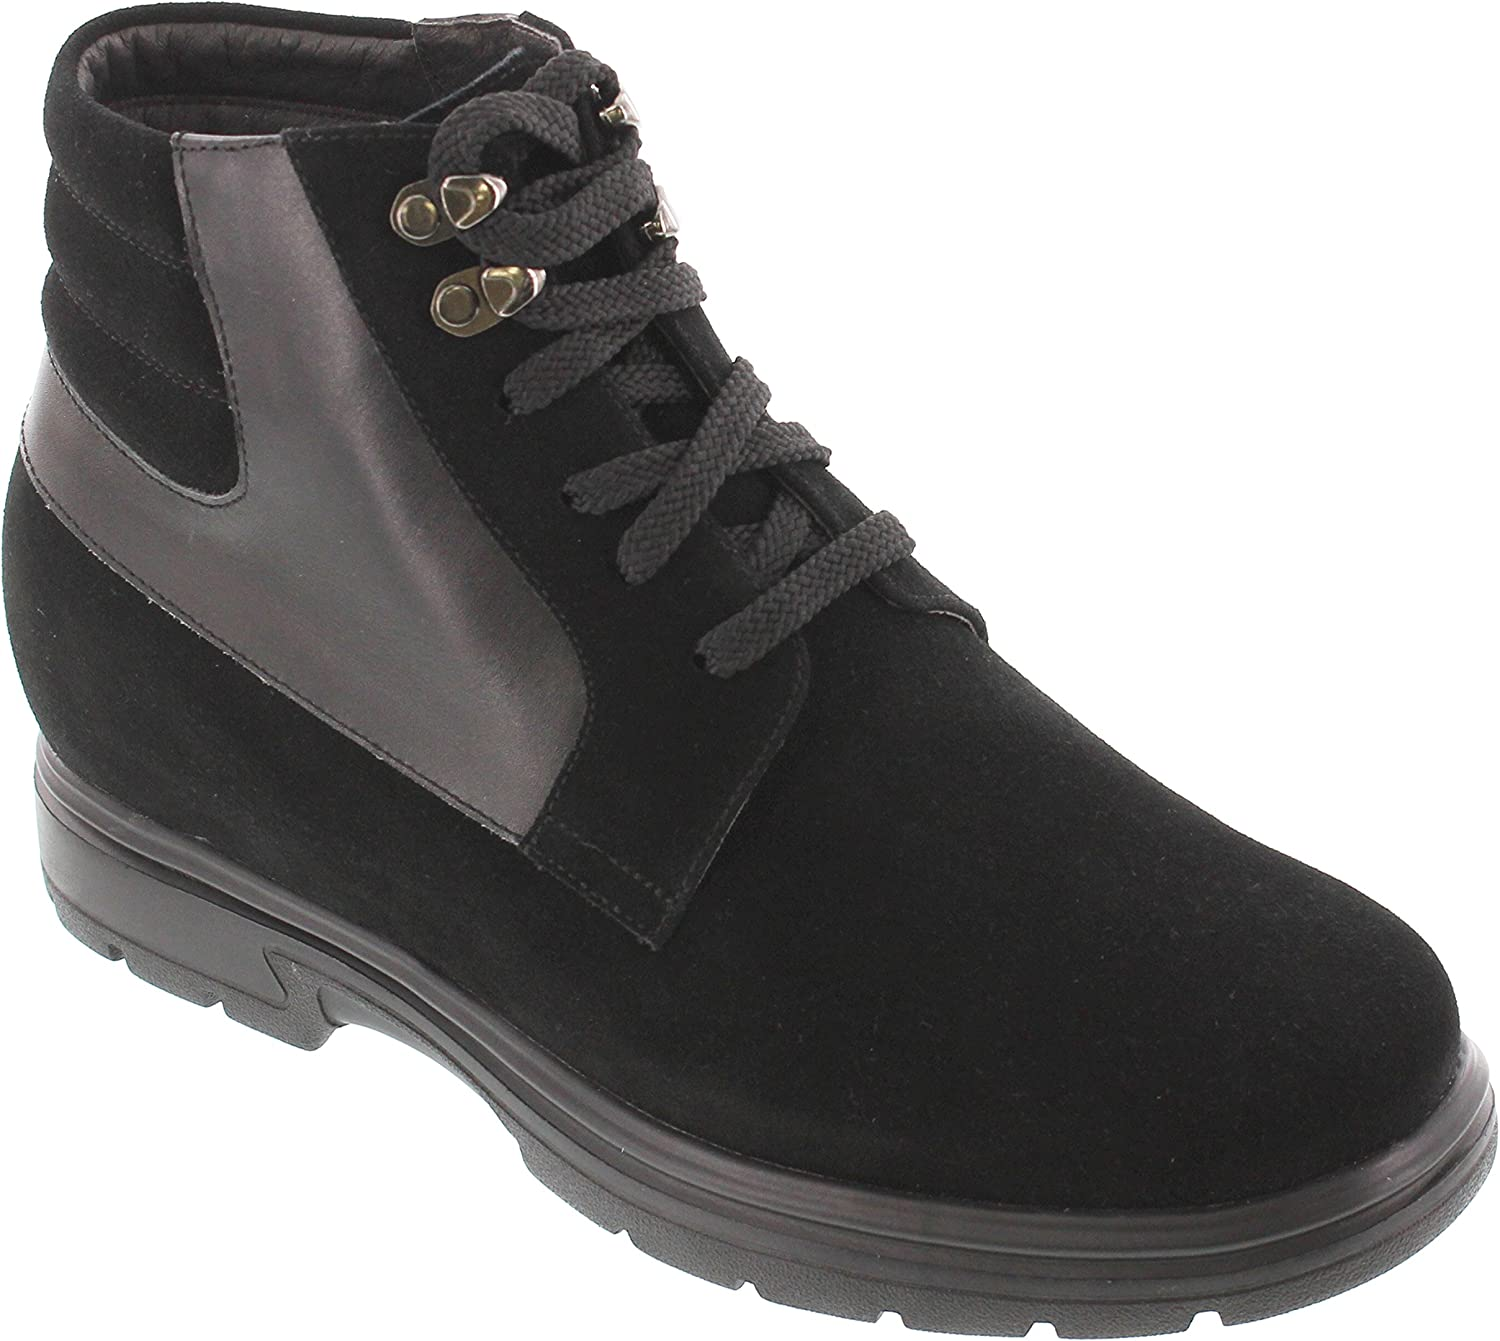 TOTO - H35011 - 3.2 Inches Taller - Height Increasing Elevator shoes - Black Suede Ankle Boots